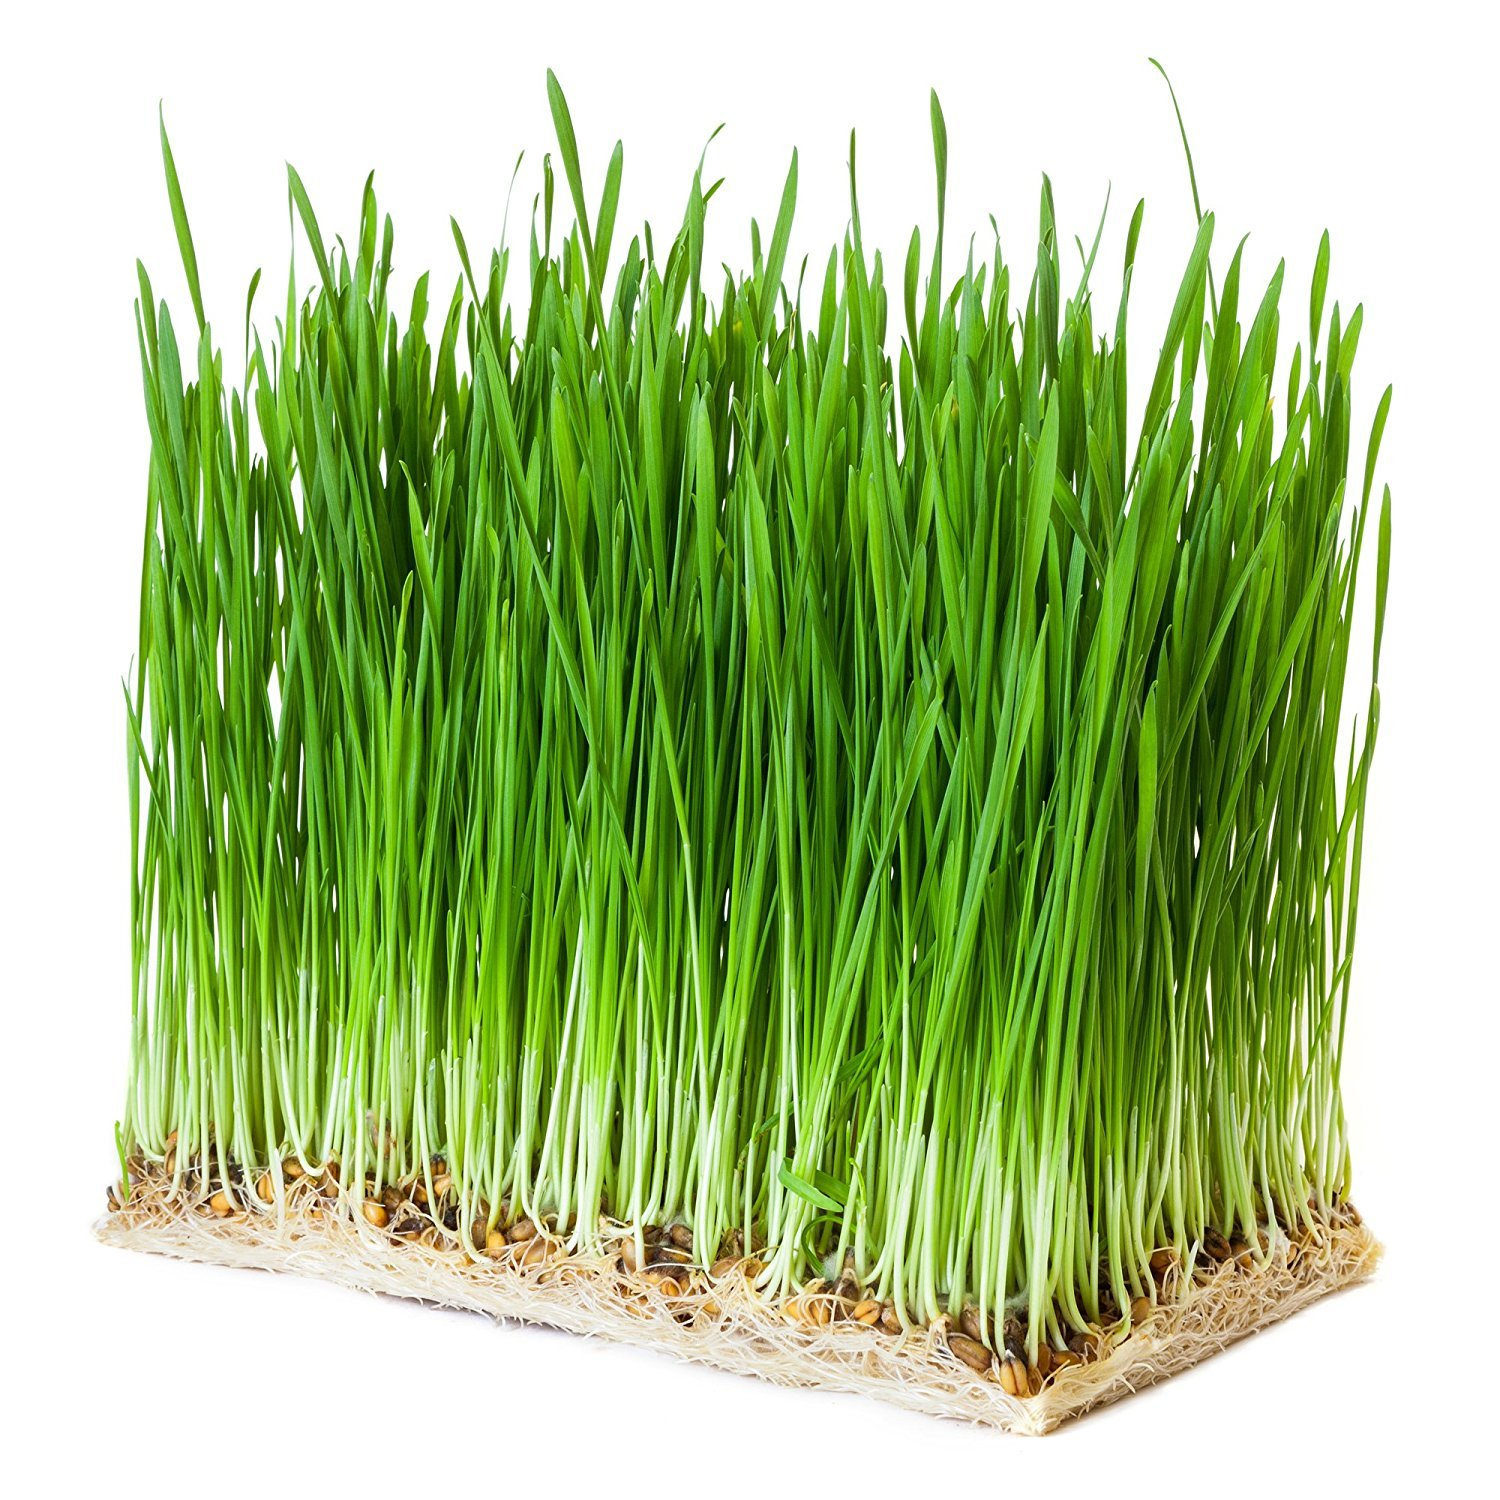 Potomac Banks Cat Grass, Organic Oat, 2.5 pound (Comes with Free How to Live Stress Free Ebook)